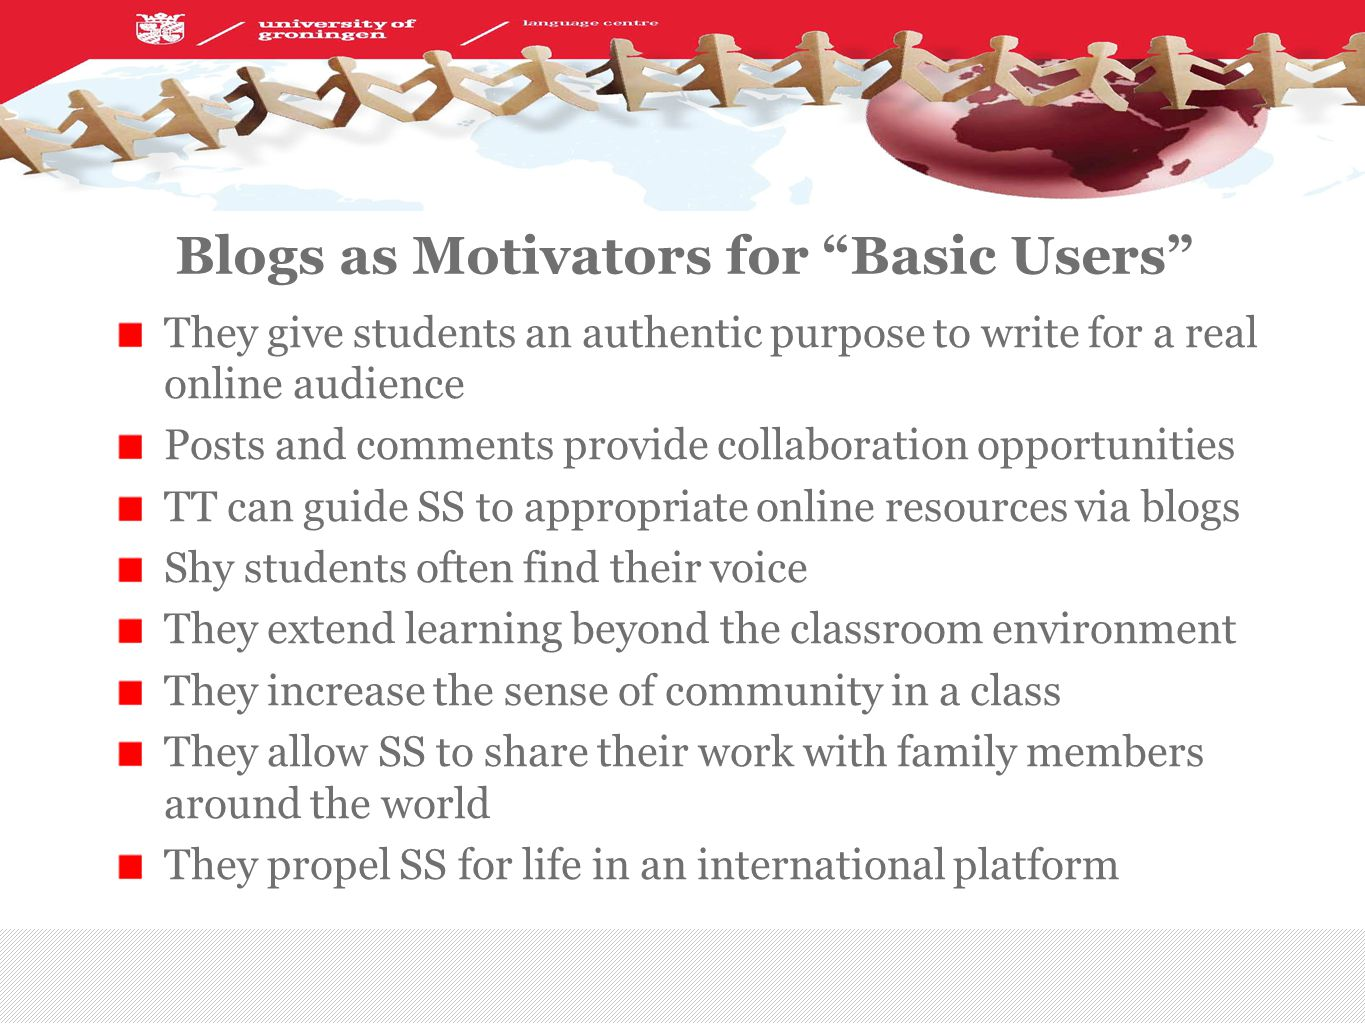 Blogs as Motivators for Basic Users They give students an authentic purpose to write for a real online audience Posts and comments provide collaboration opportunities TT can guide SS to appropriate online resources via blogs Shy students often find their voice They extend learning beyond the classroom environment They increase the sense of community in a class They allow SS to share their work with family members around the world They propel SS for life in an international platform